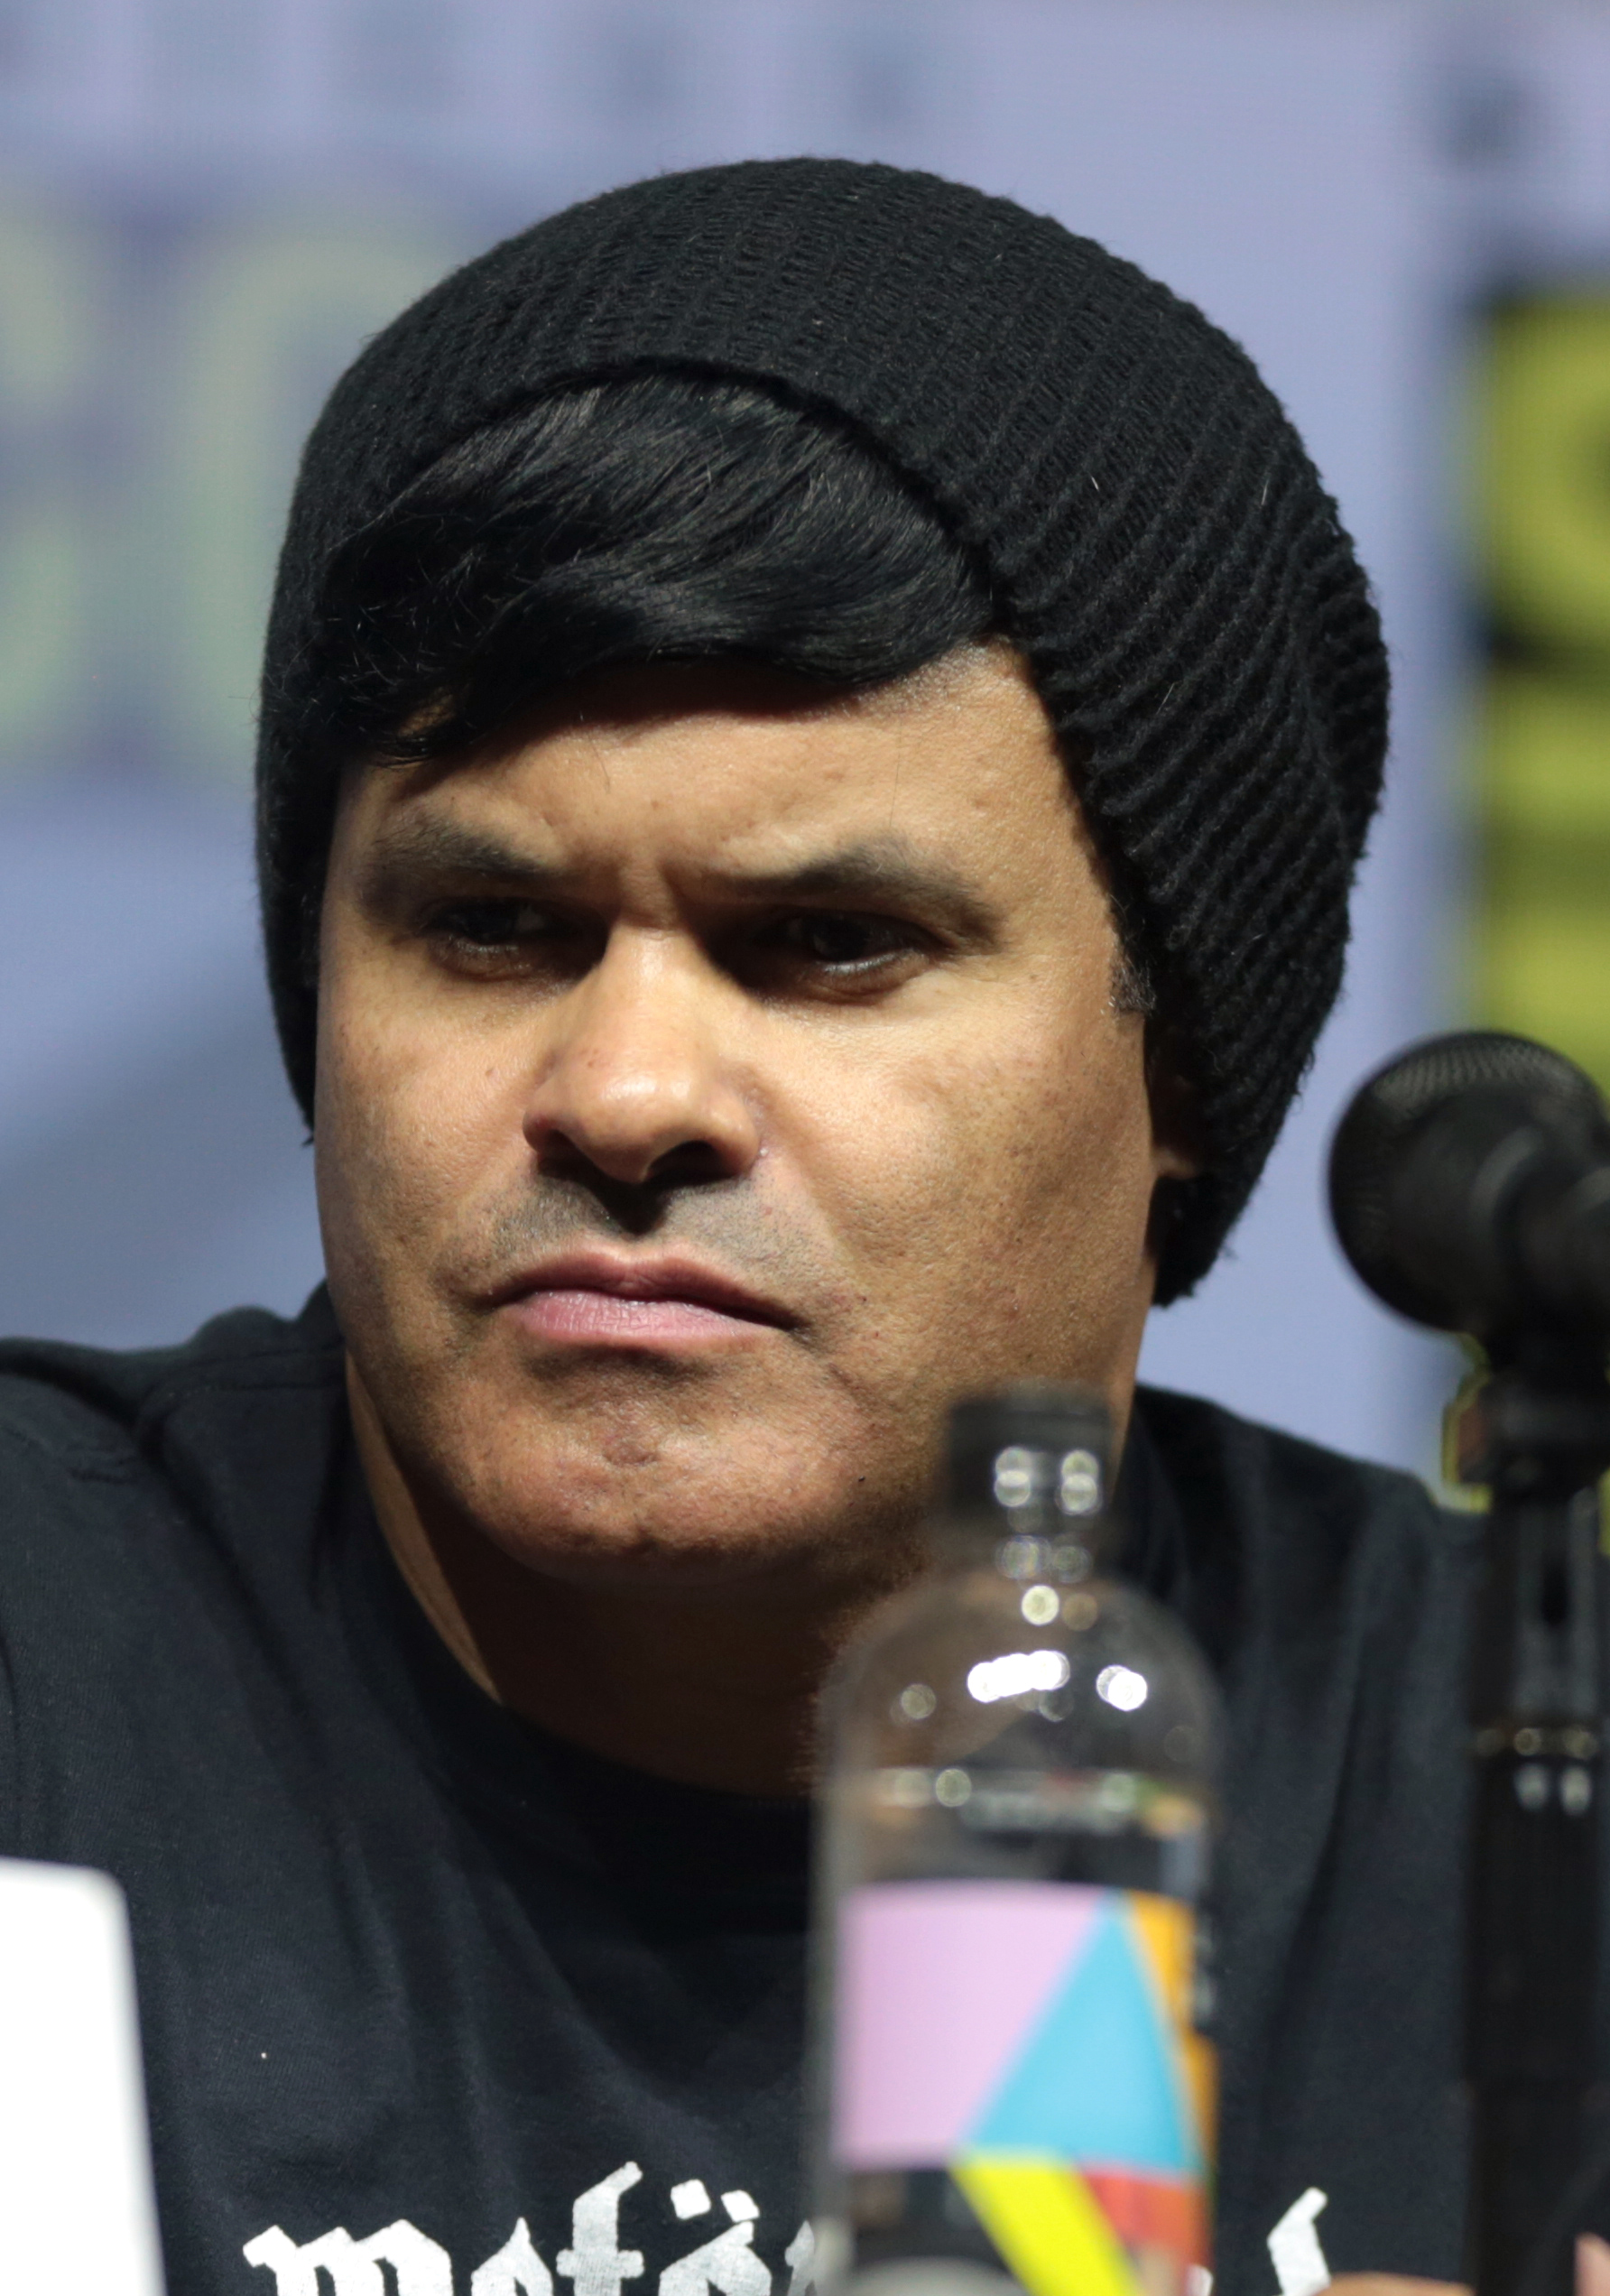 Elgin James is wearing a black colored beanie